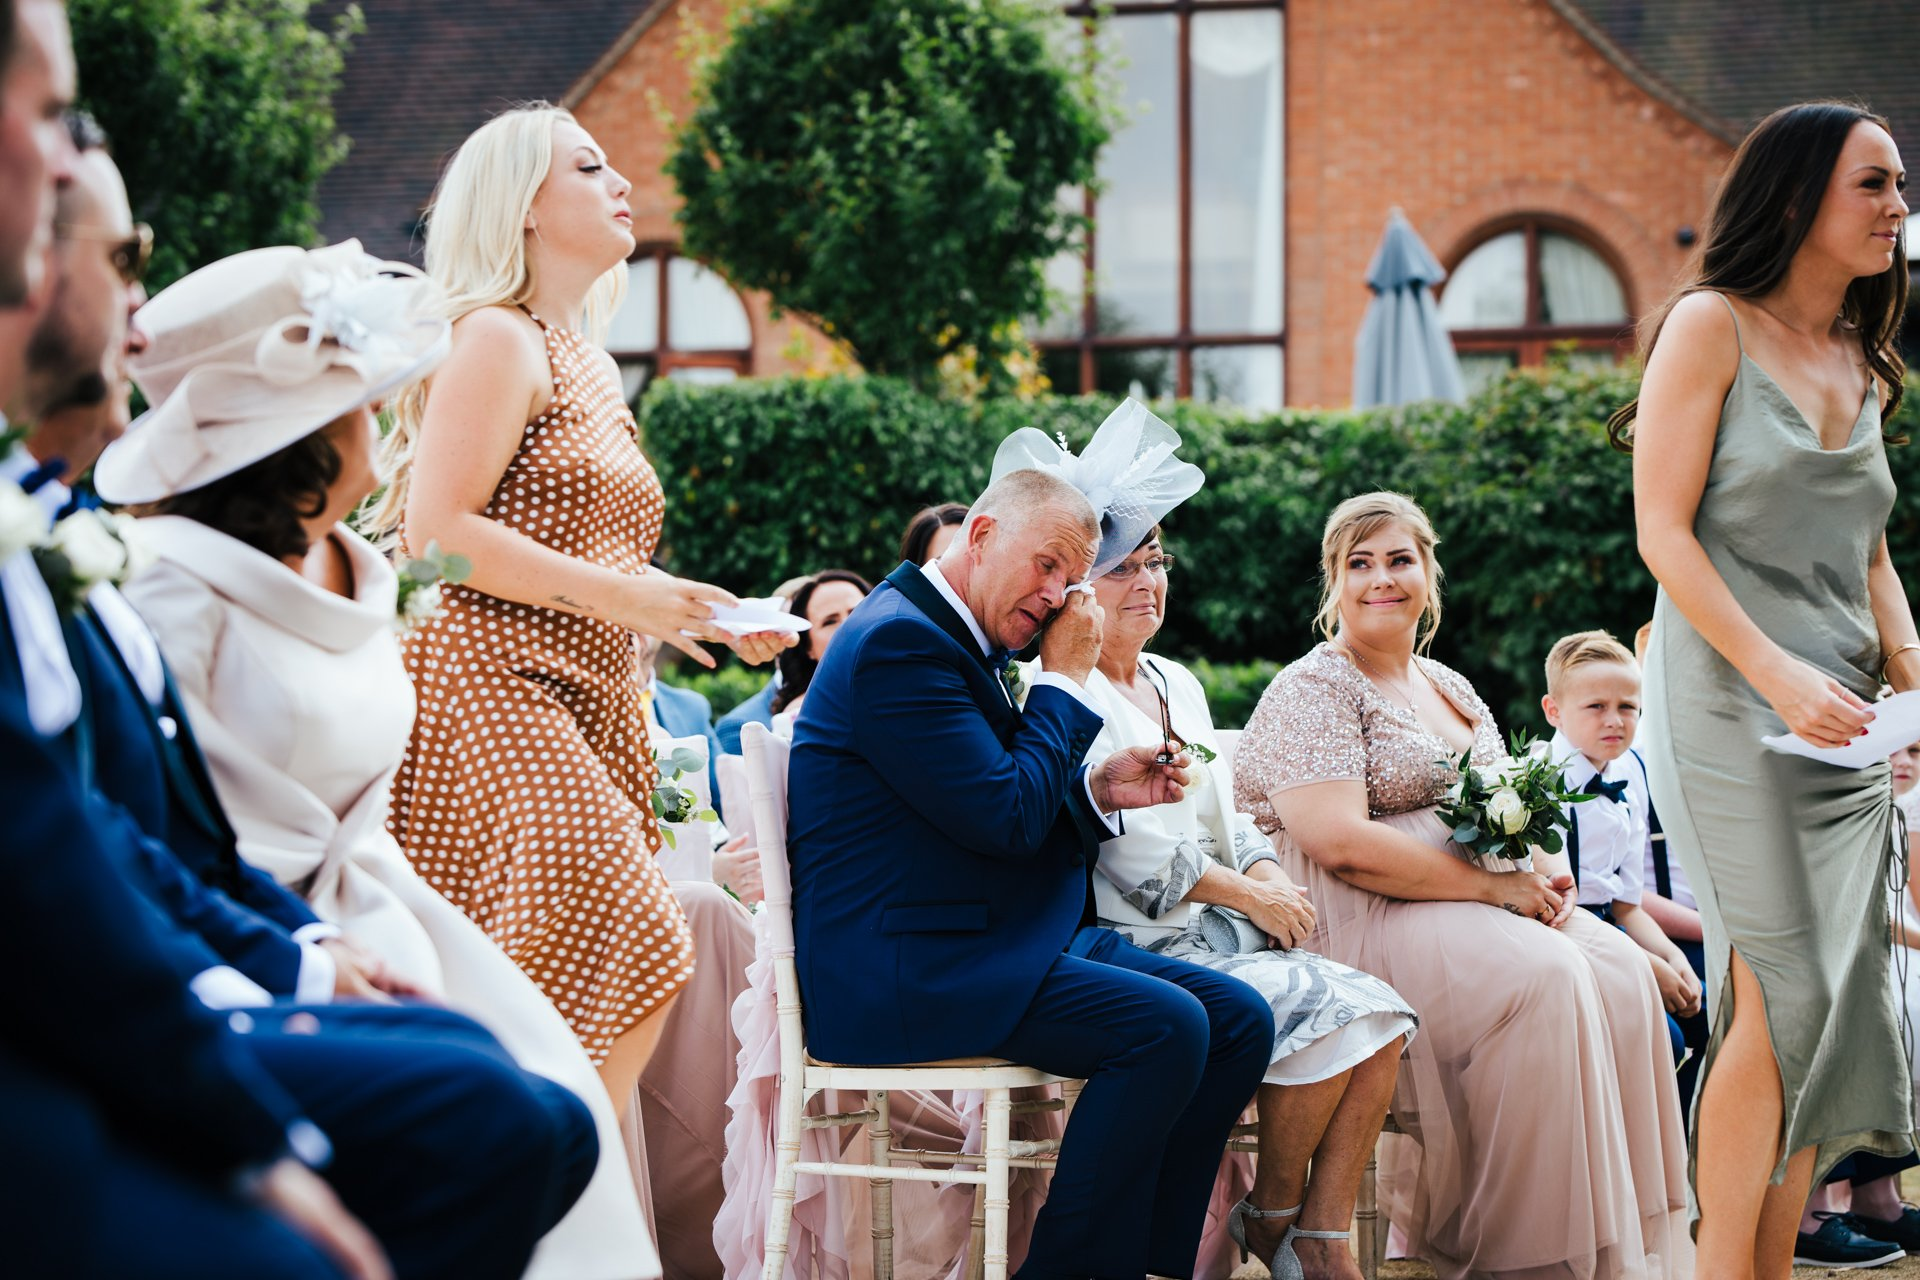 Father of the bride wiping his eyes watching his daughter wed